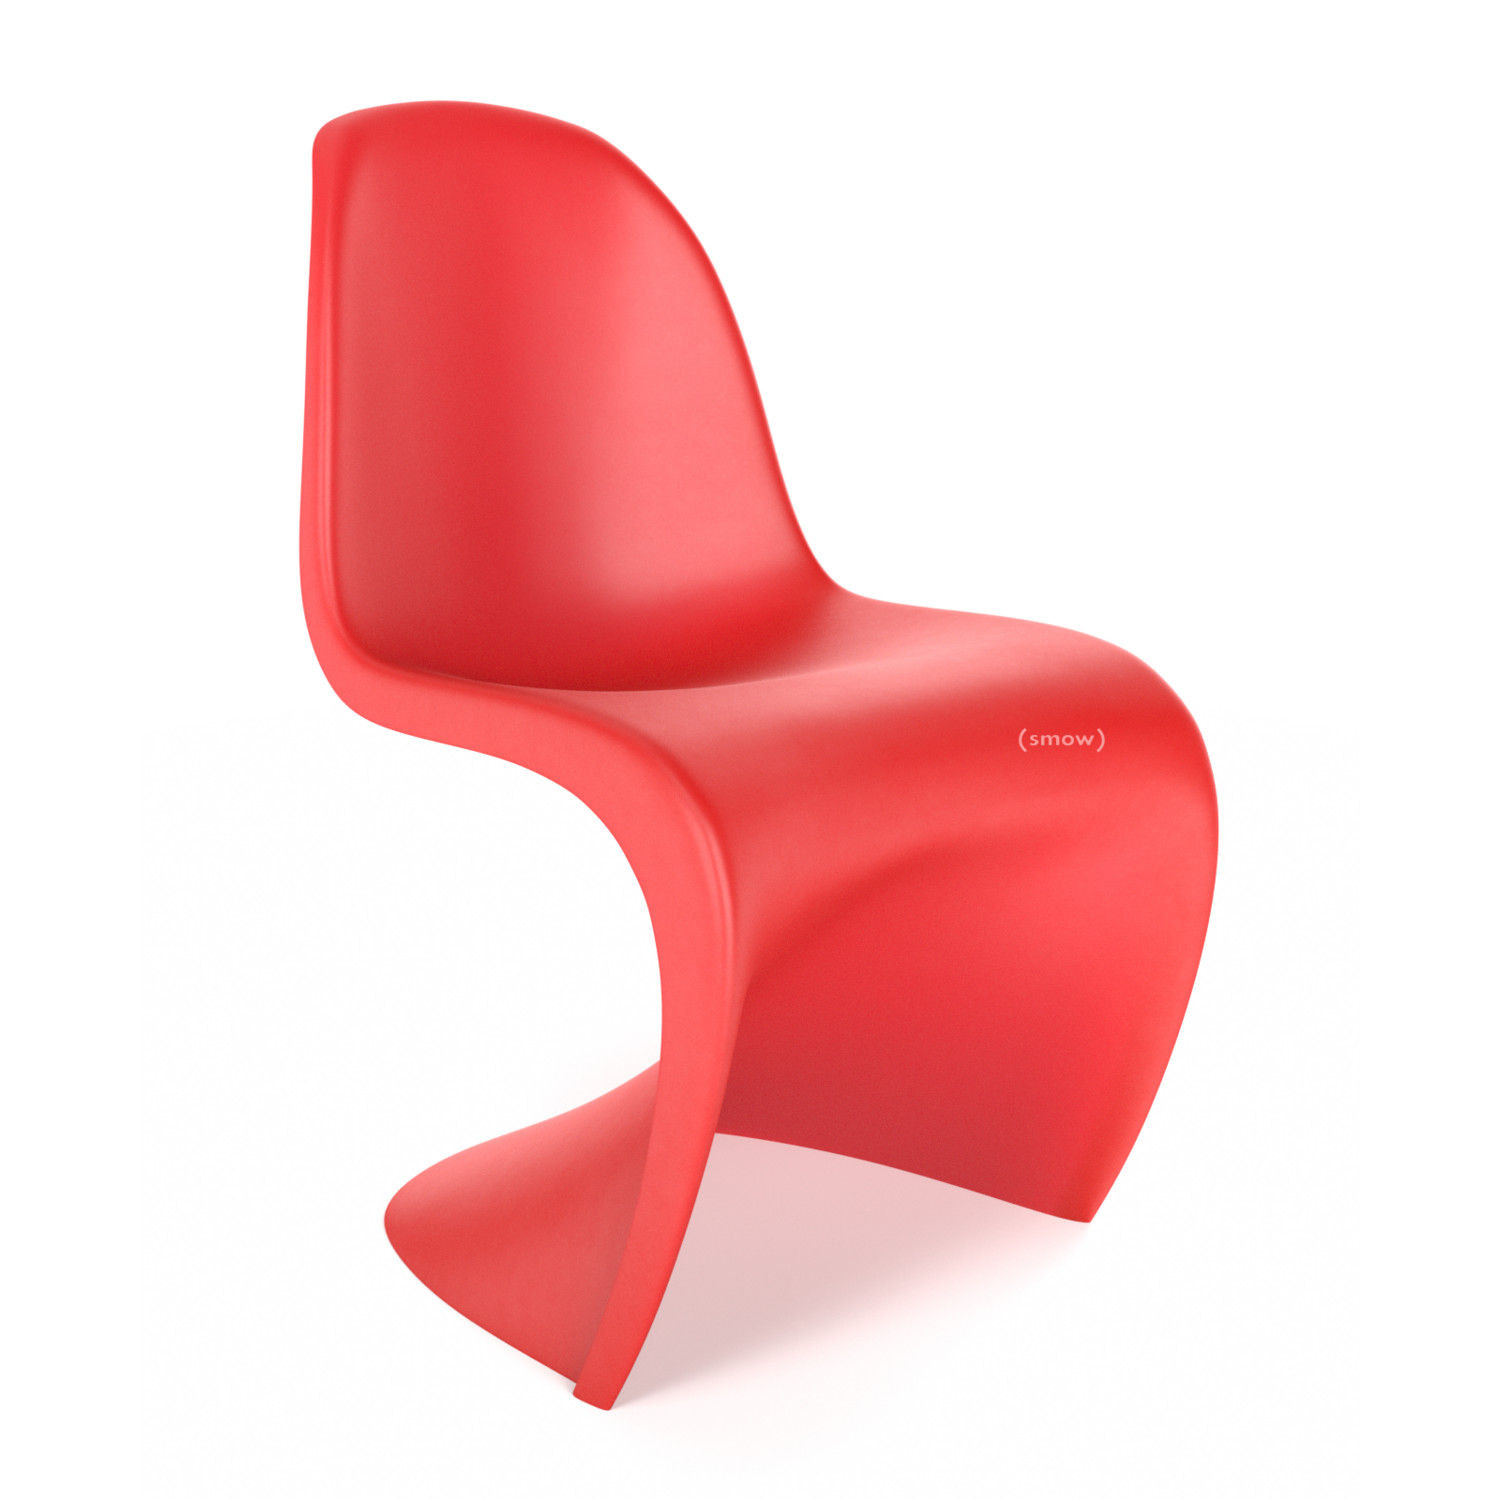 vitra panton chair classic red by verner panton 1999. Black Bedroom Furniture Sets. Home Design Ideas